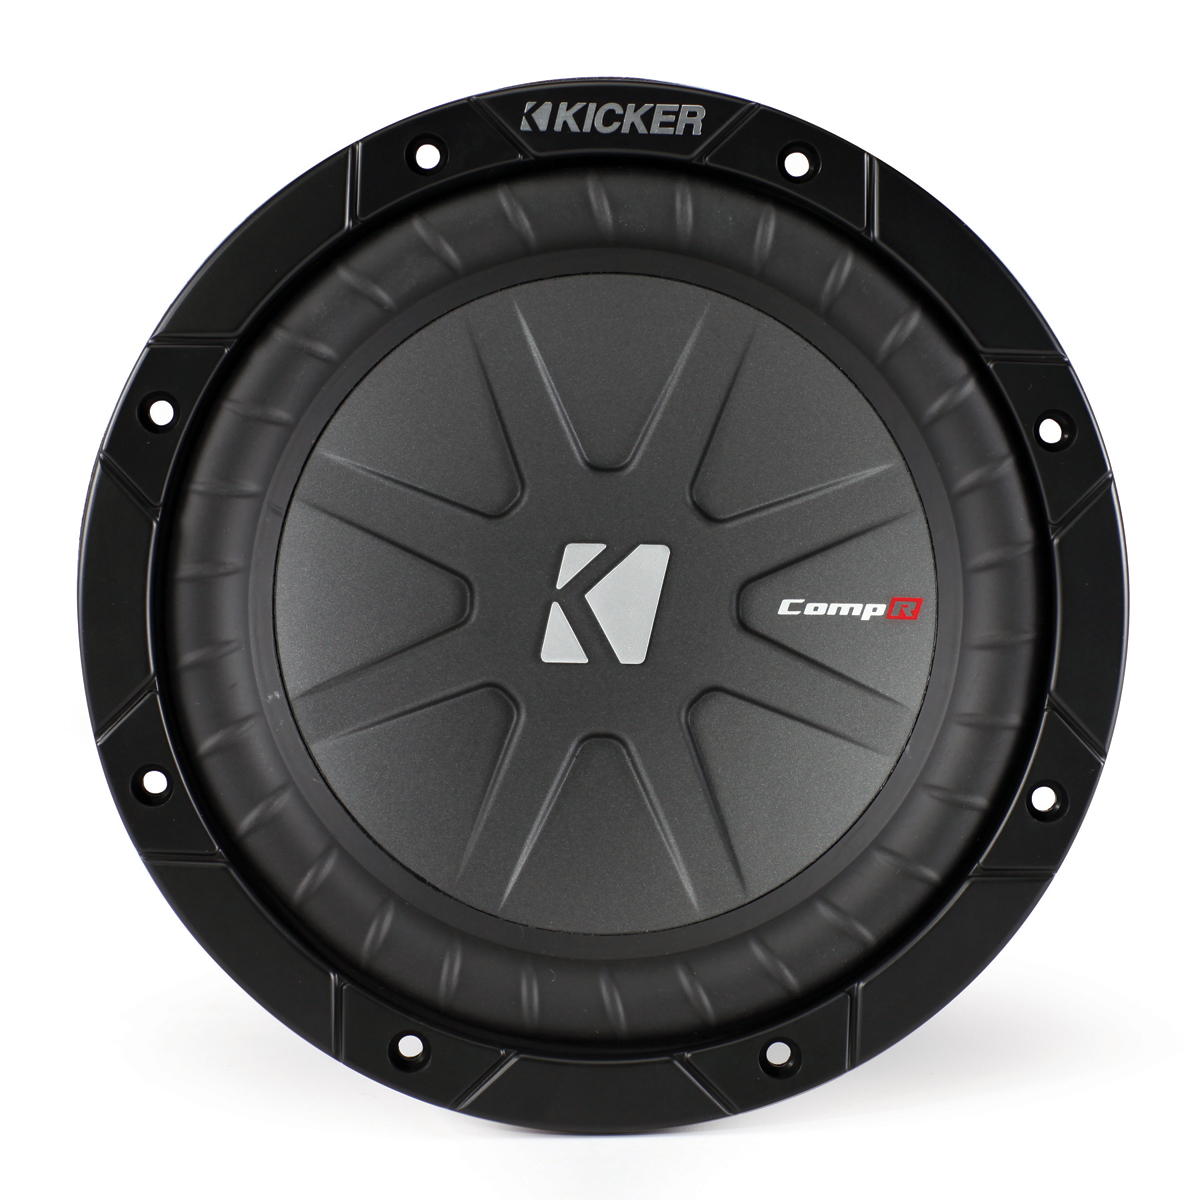 Kicker Car Audio Cwr8 Compr 8 Inch Subwoofer Speaker 600w Peak 4 Power Acoustik Equalizer Wiring Diagrams Ohms Dvc 40cwr84